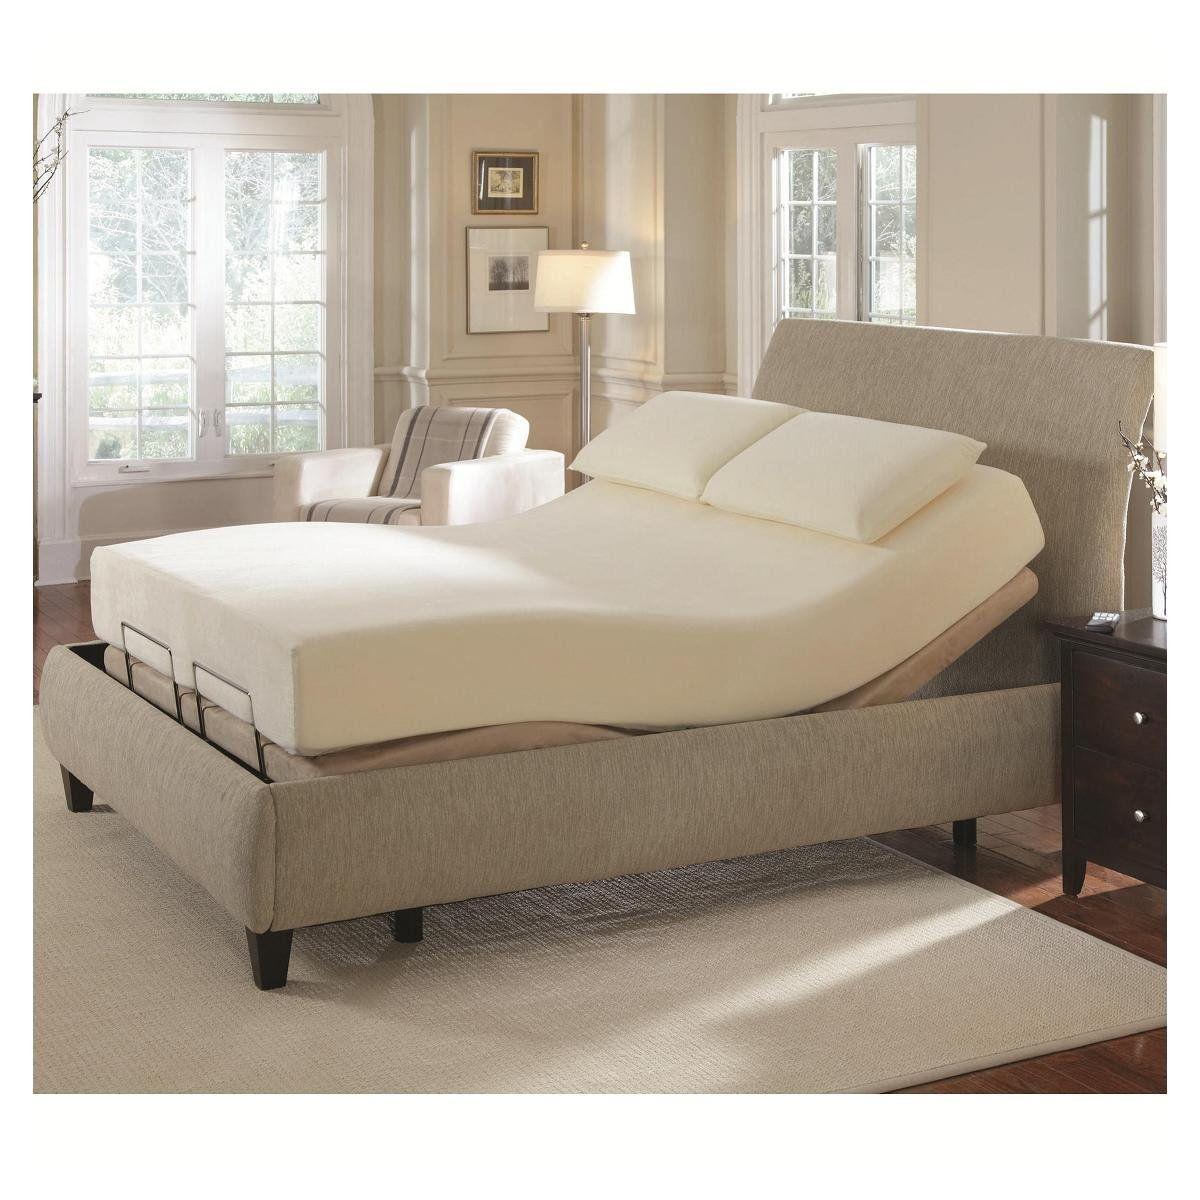 Adjustable Beds Electric California King Long Adjustable Massage Bed Em217899 Emporium